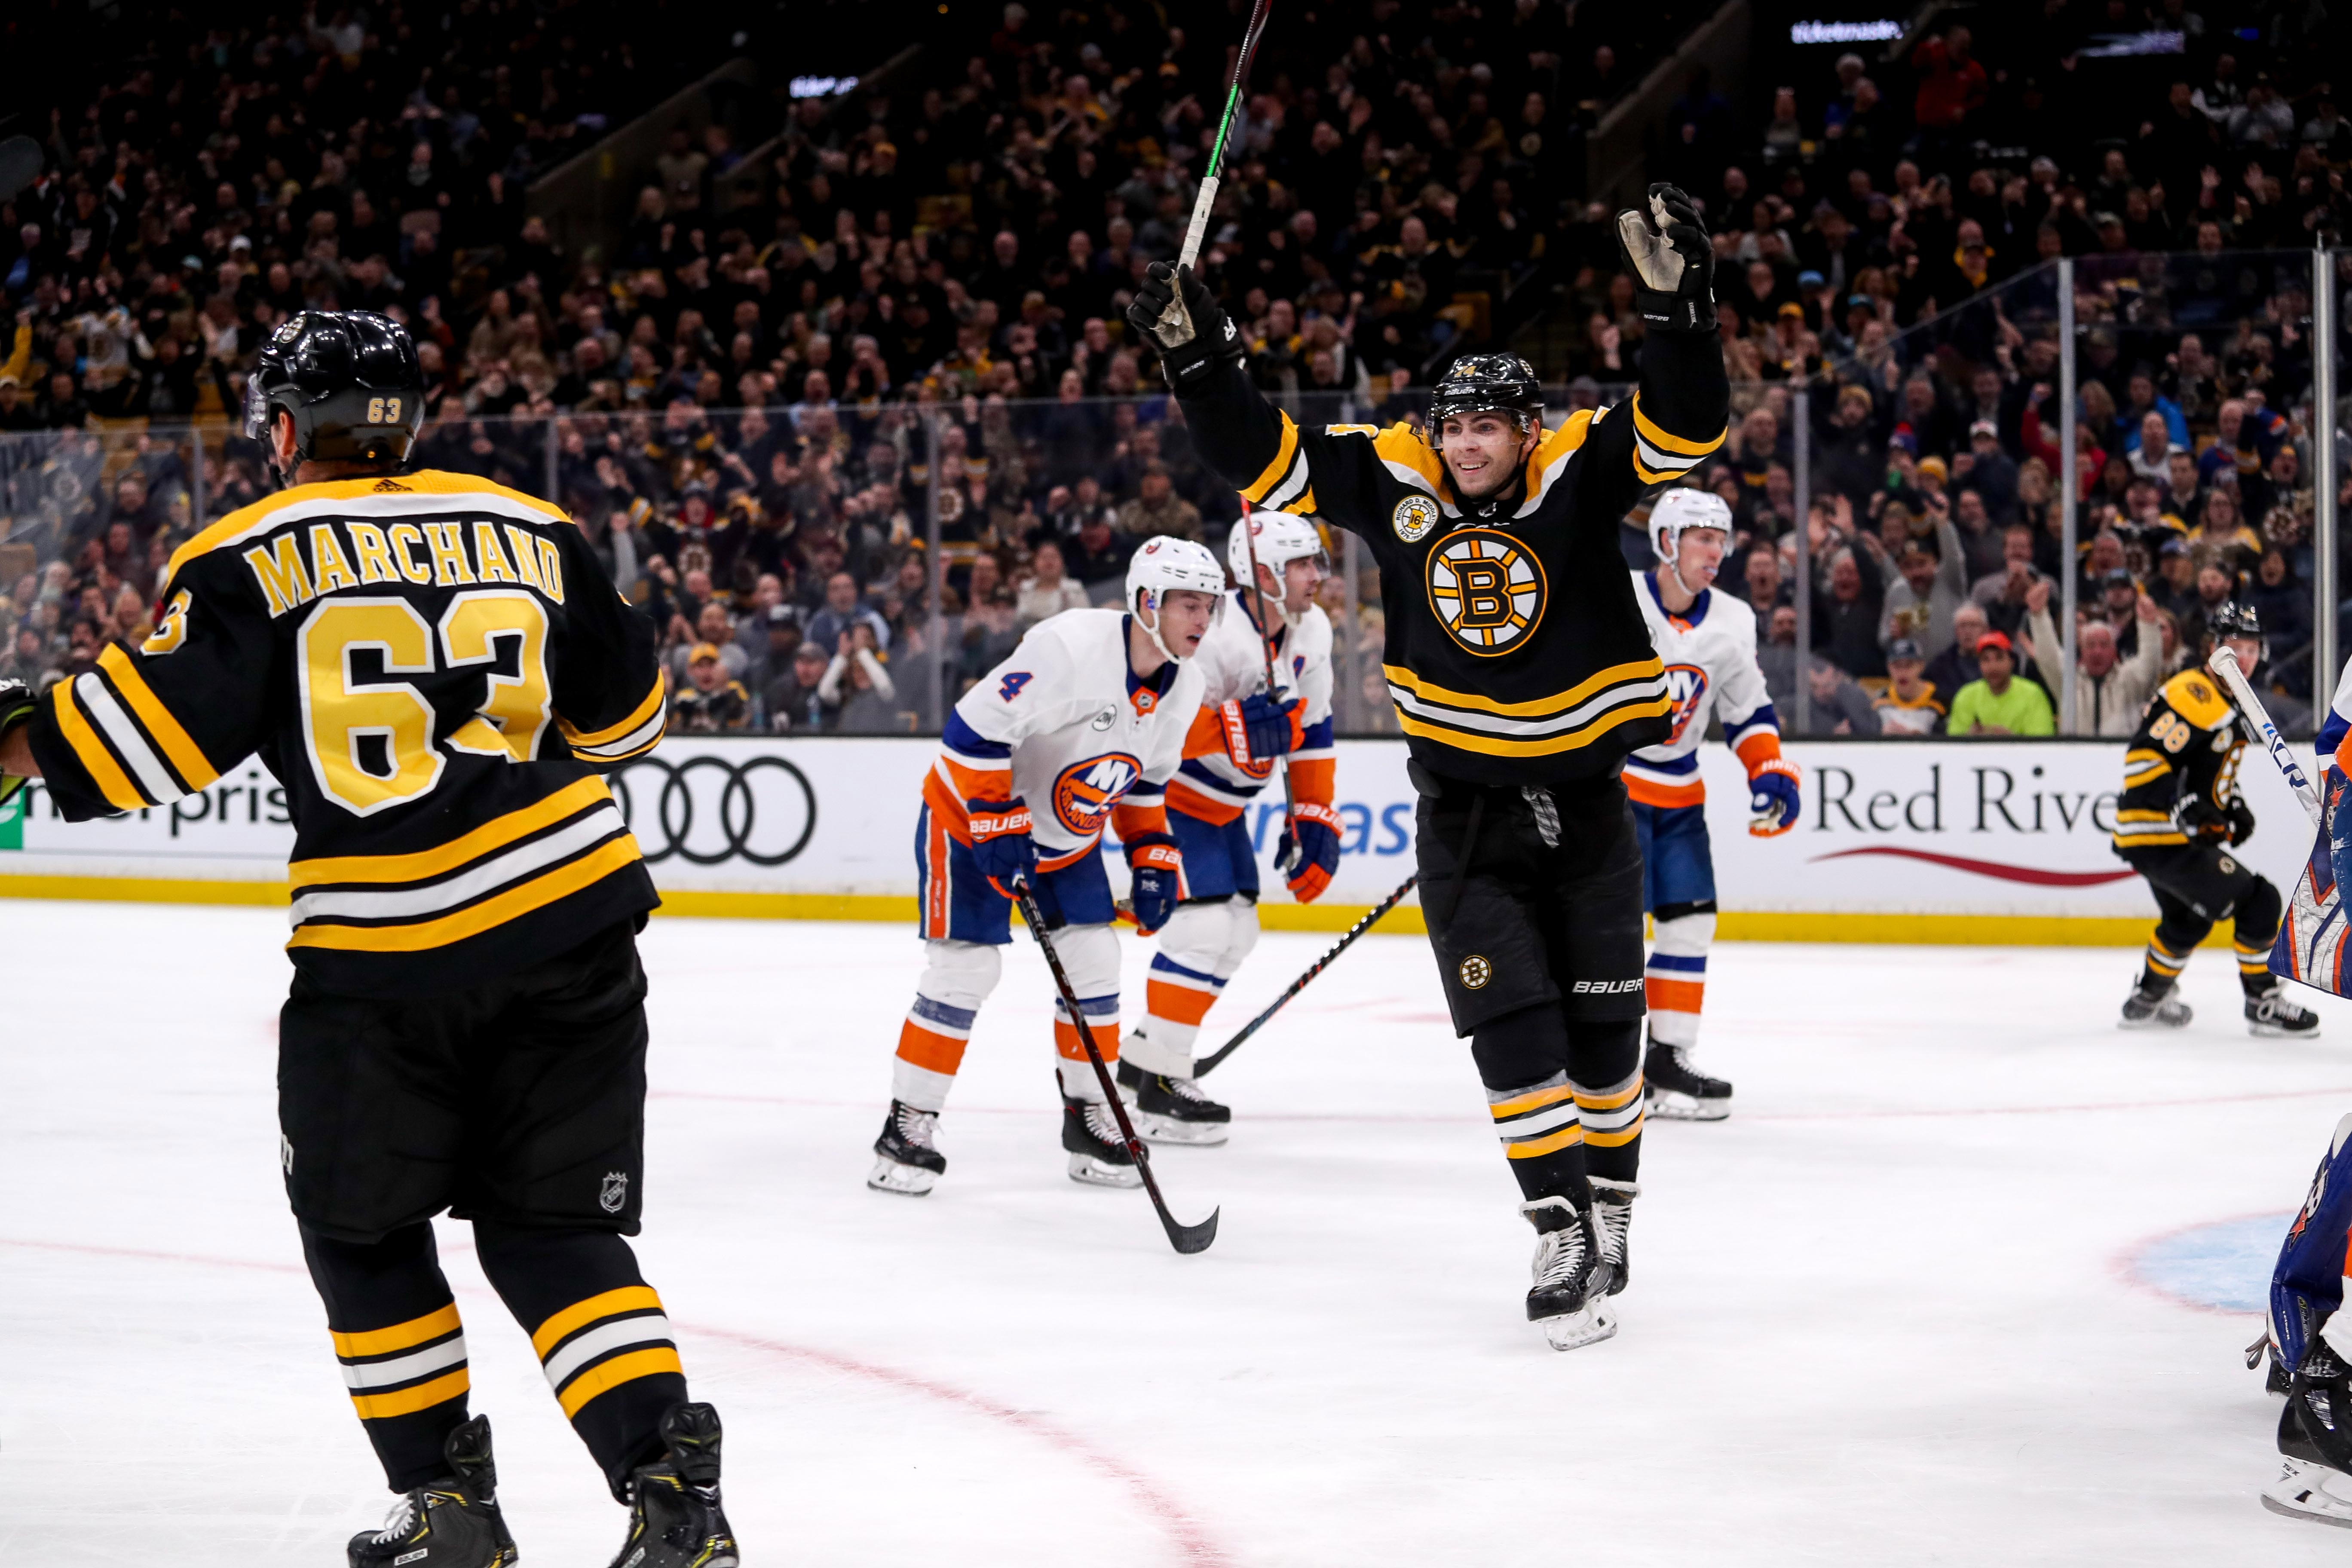 Nov 29, 2018; Boston, MA, USA; Boston Bruins left wing Jake DeBrusk (74) celebrates after a goal by Boston left wing Brad Marchand (63) against the New York Islanders during the second period at TD Garden. Mandatory Credit: Paul Rutherford-USA TODAY Sports